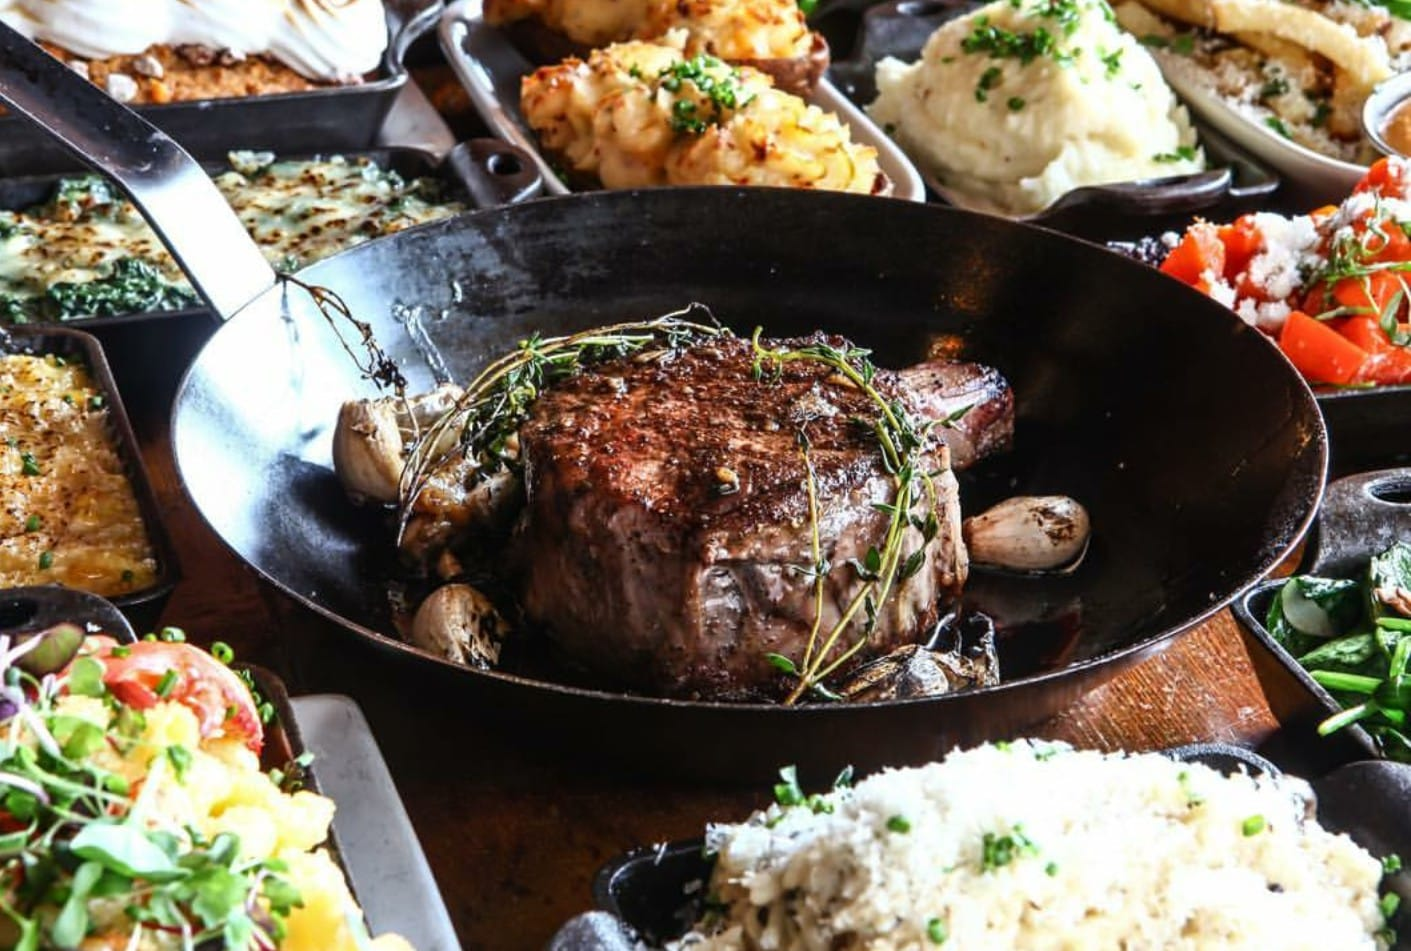 A cast iron skillet with a large steak surrounded by sides of mashed potatoes, rice, and vegetables